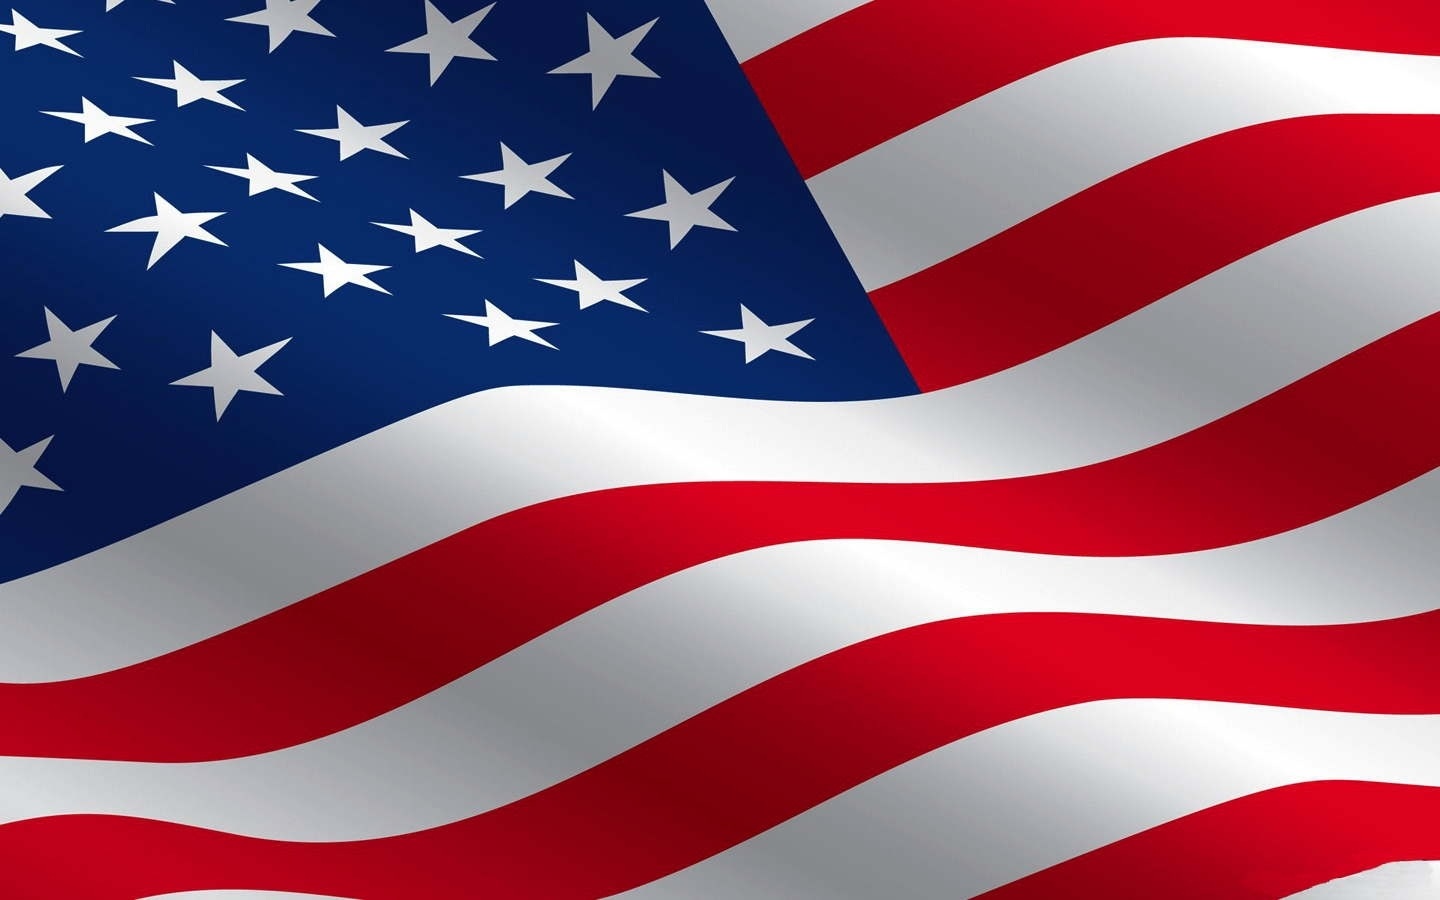 american flag wallpapers - wallpaper cave | images wallpapers